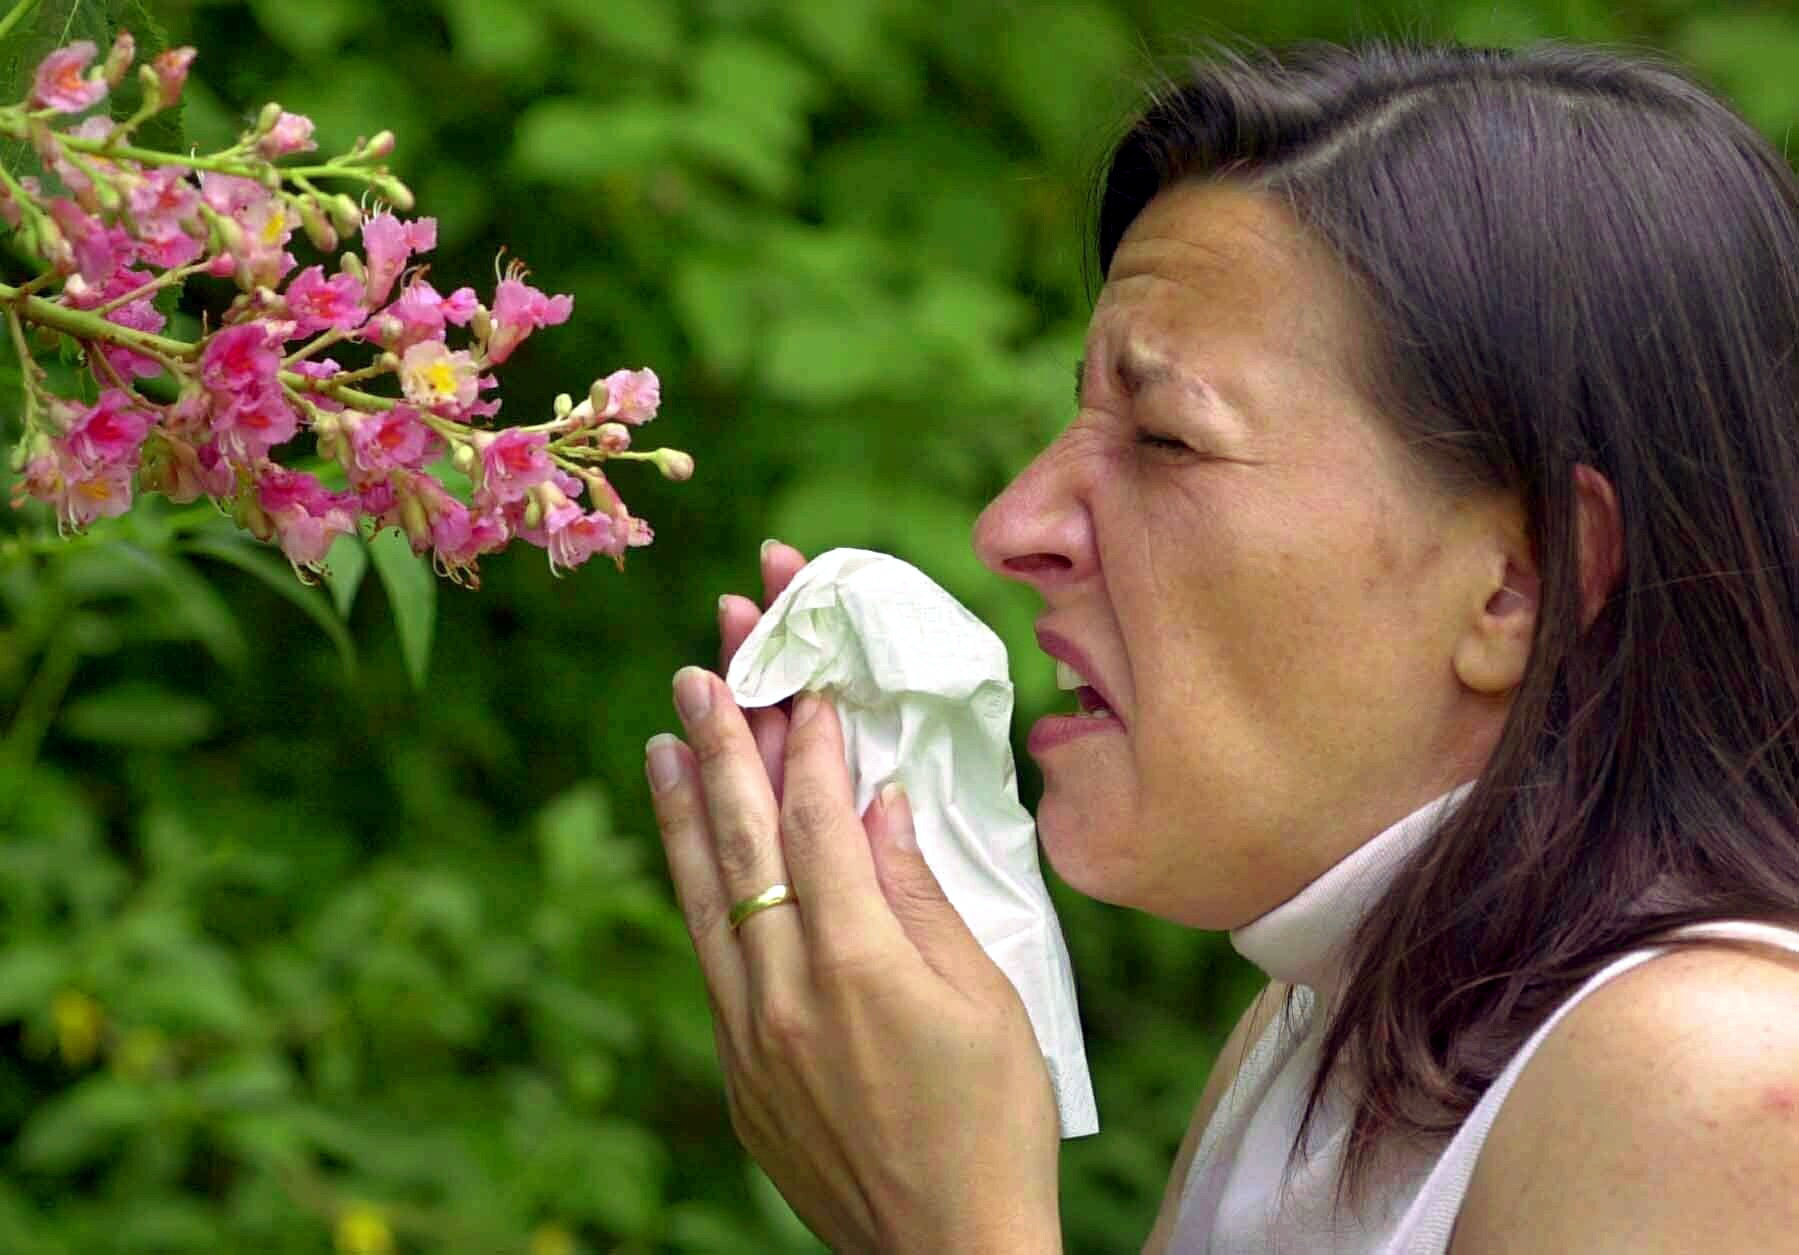 Hay fever season us almost upon us. Credit: PA